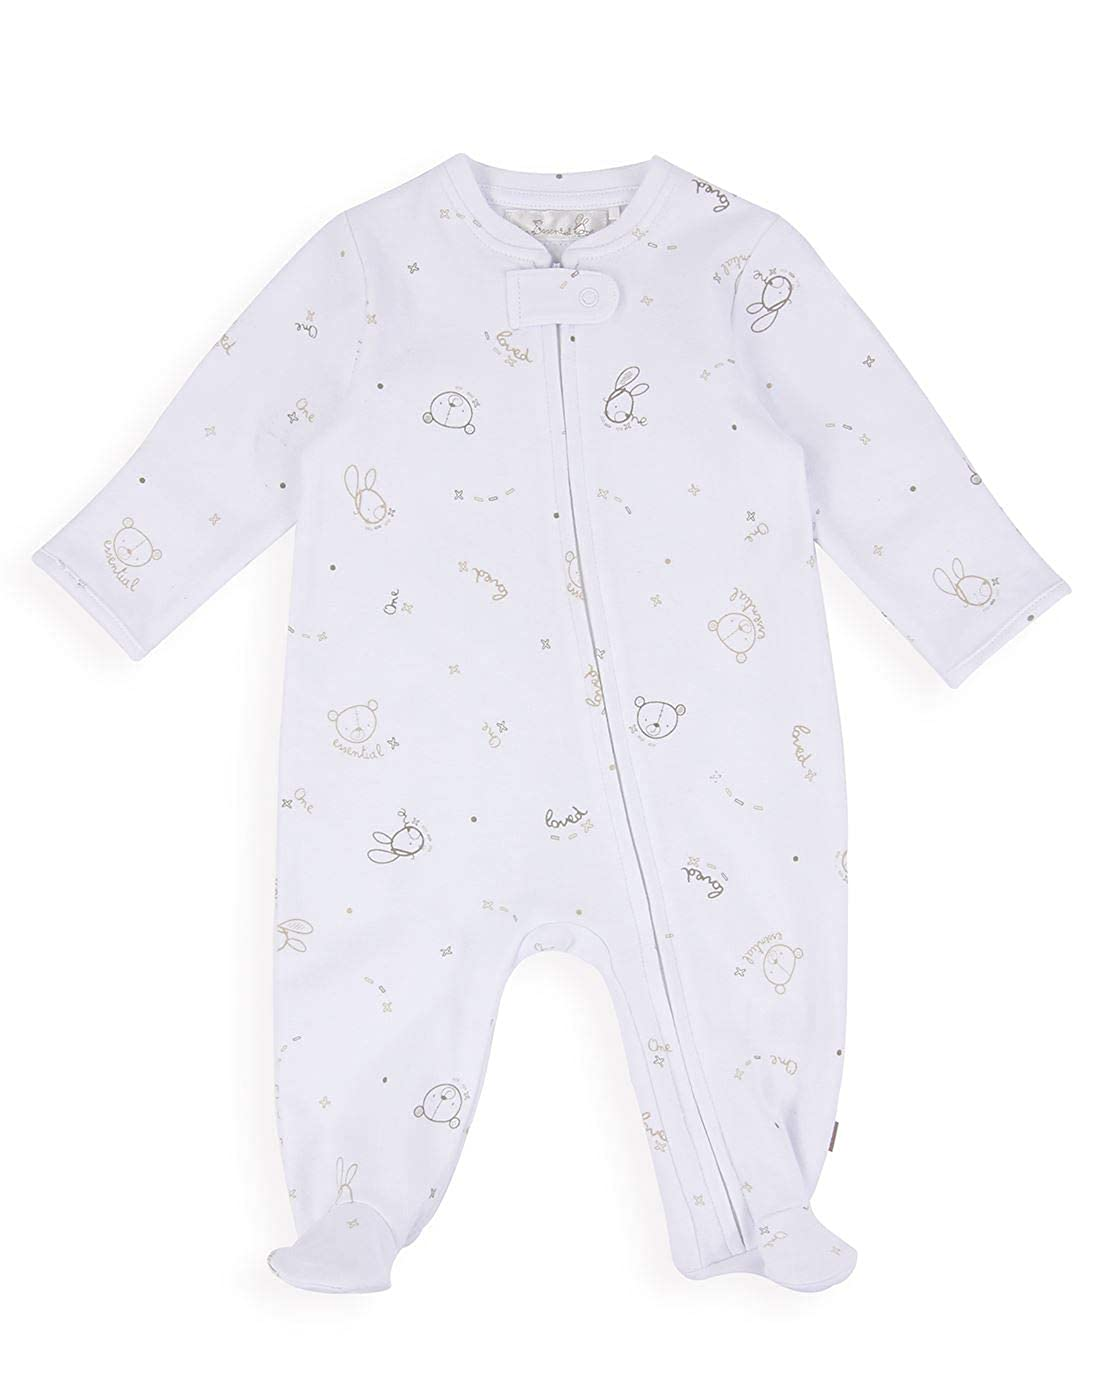 The Essential One - Baby Unisex Neutral Zip-Up All in One - White/Beige - EO309